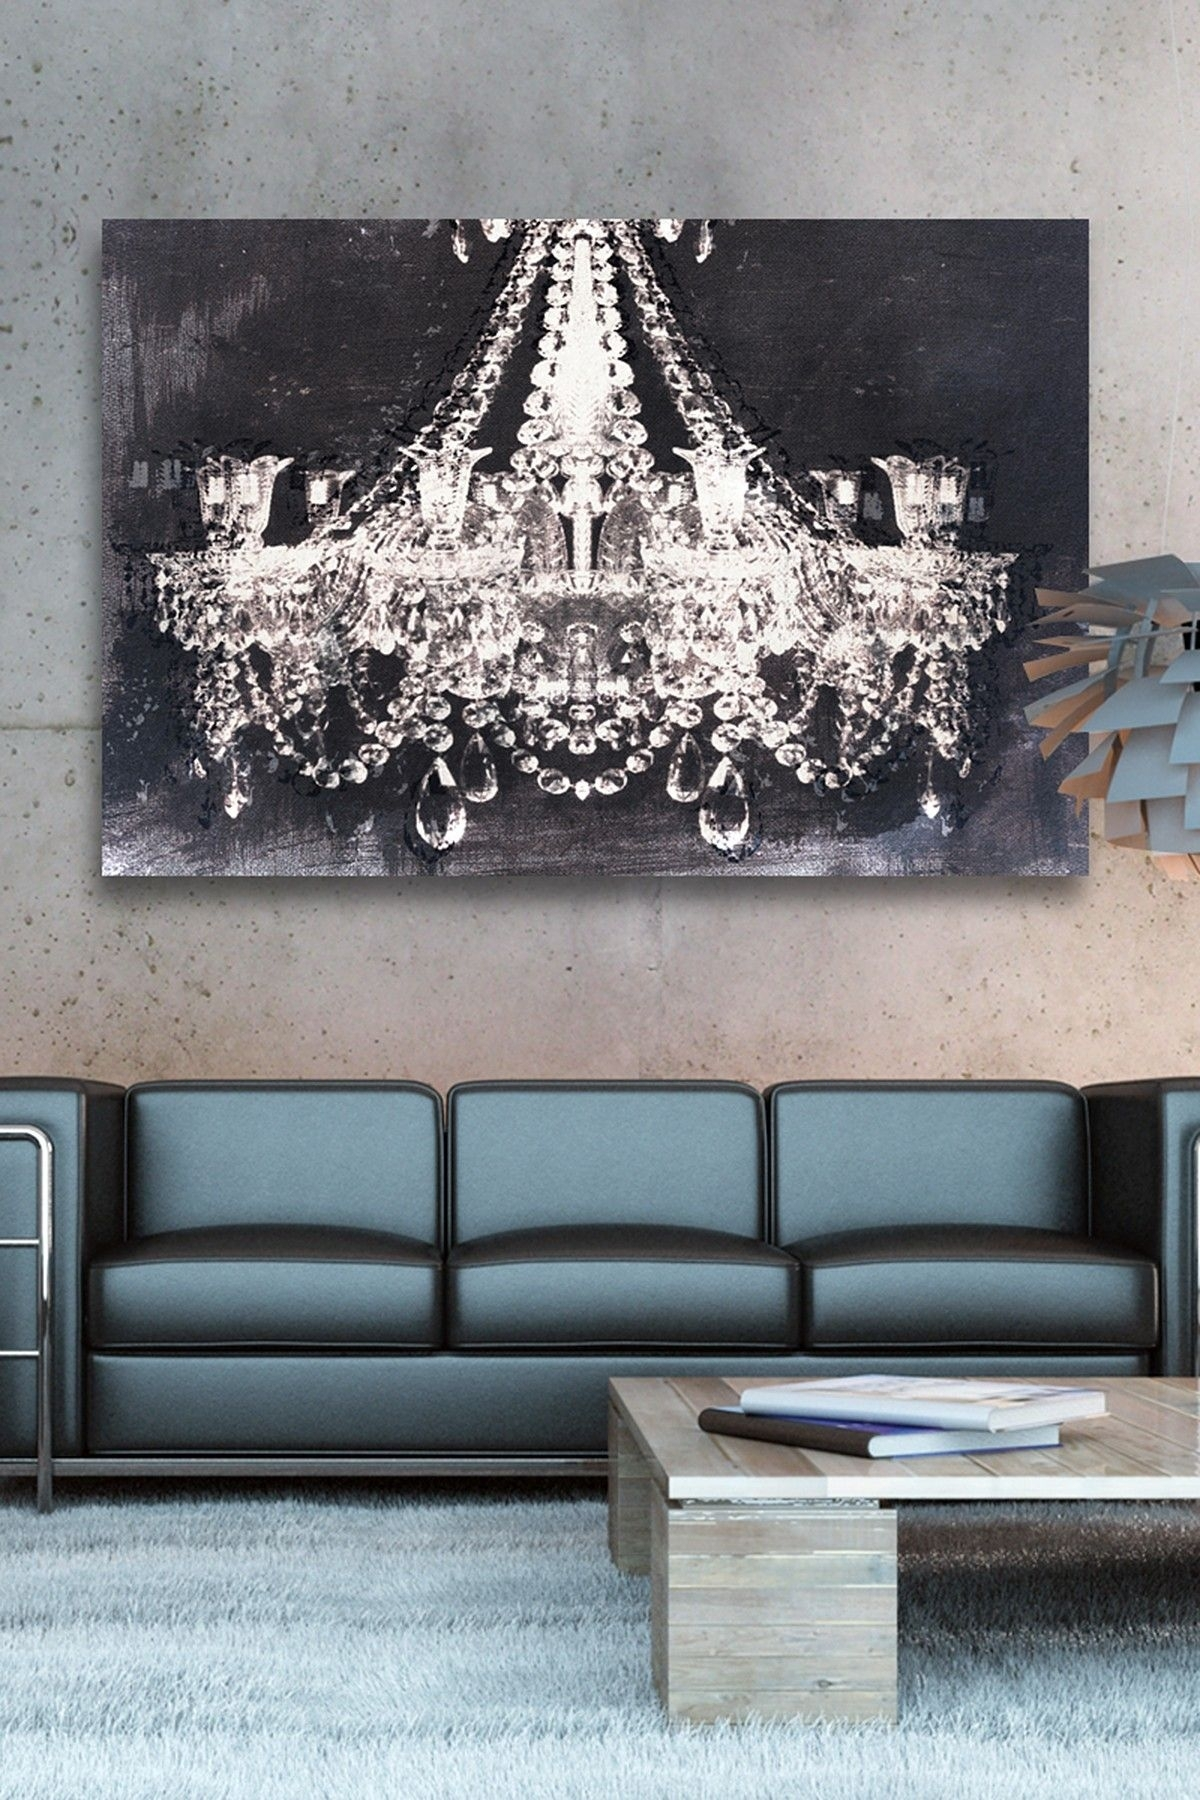 Oliver Gal Dramatic Entrance Night Canvas Wall Art | Http With Regard To Chandelier Wall Art (View 17 of 20)